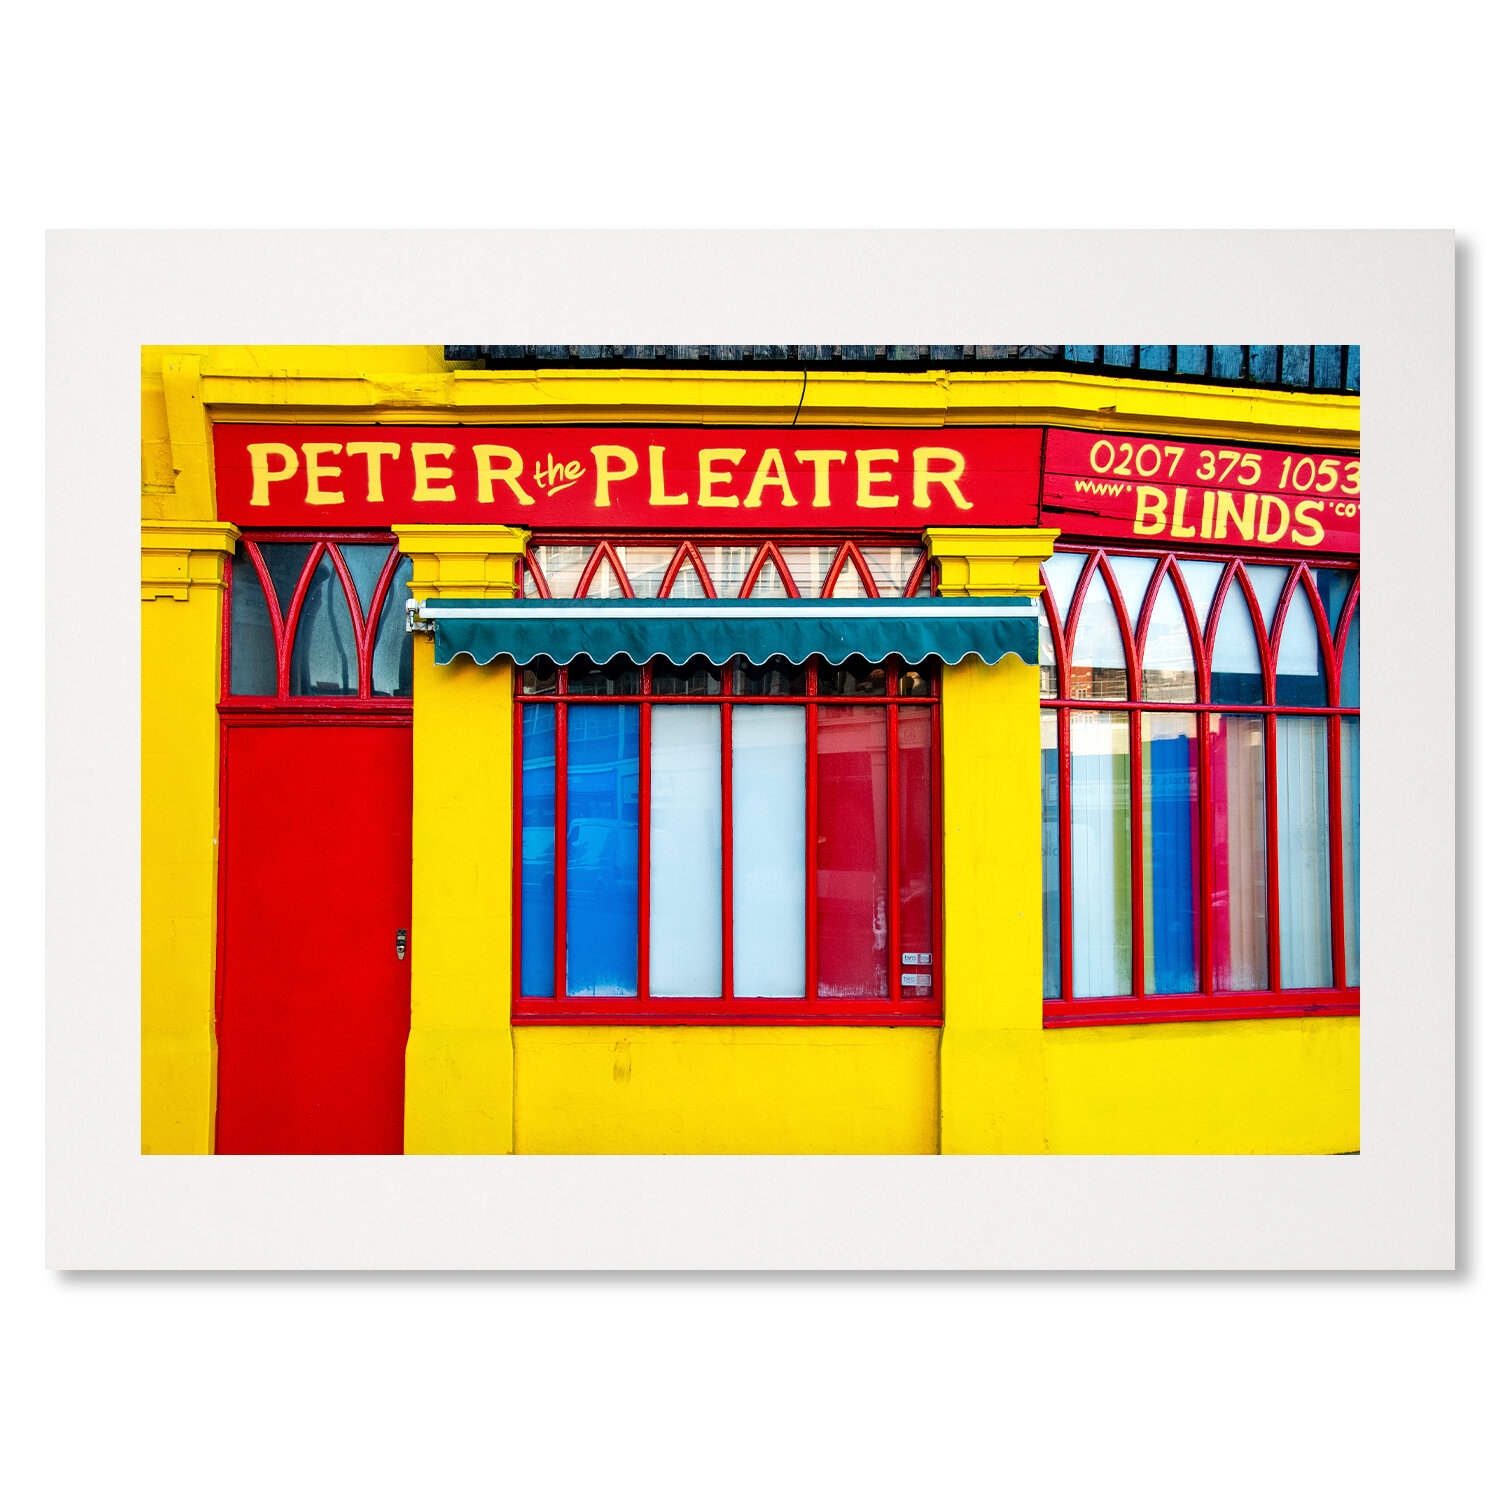 Peter The Pleater